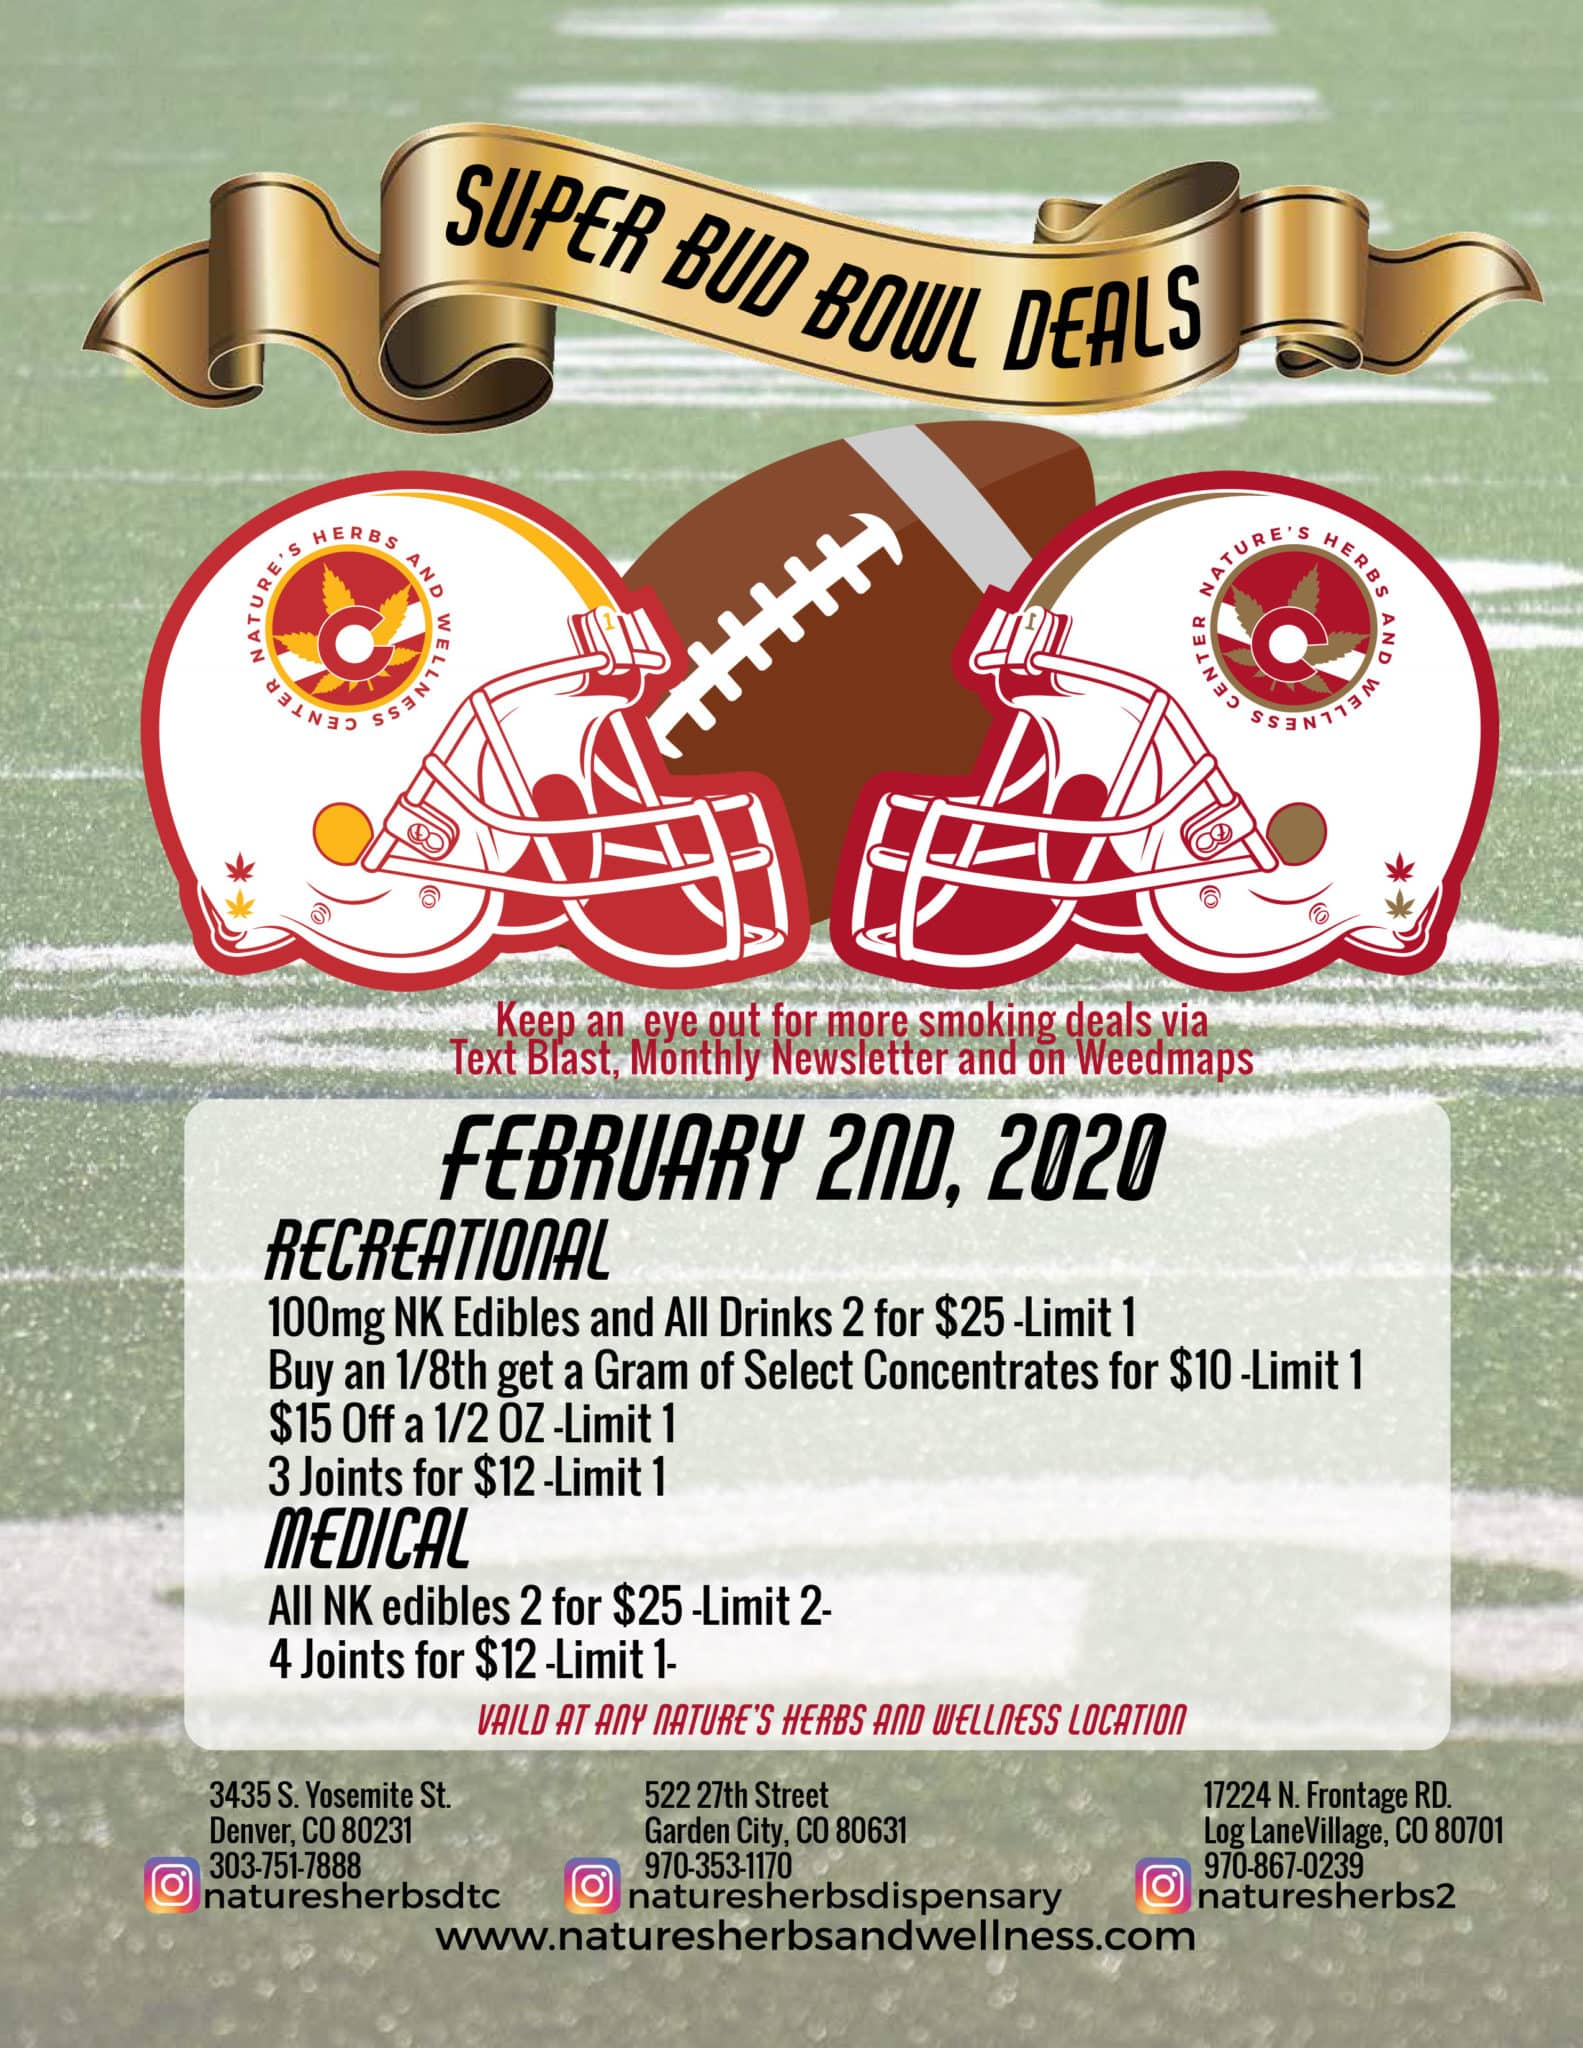 Super Bud Bowl Deals – February 2020